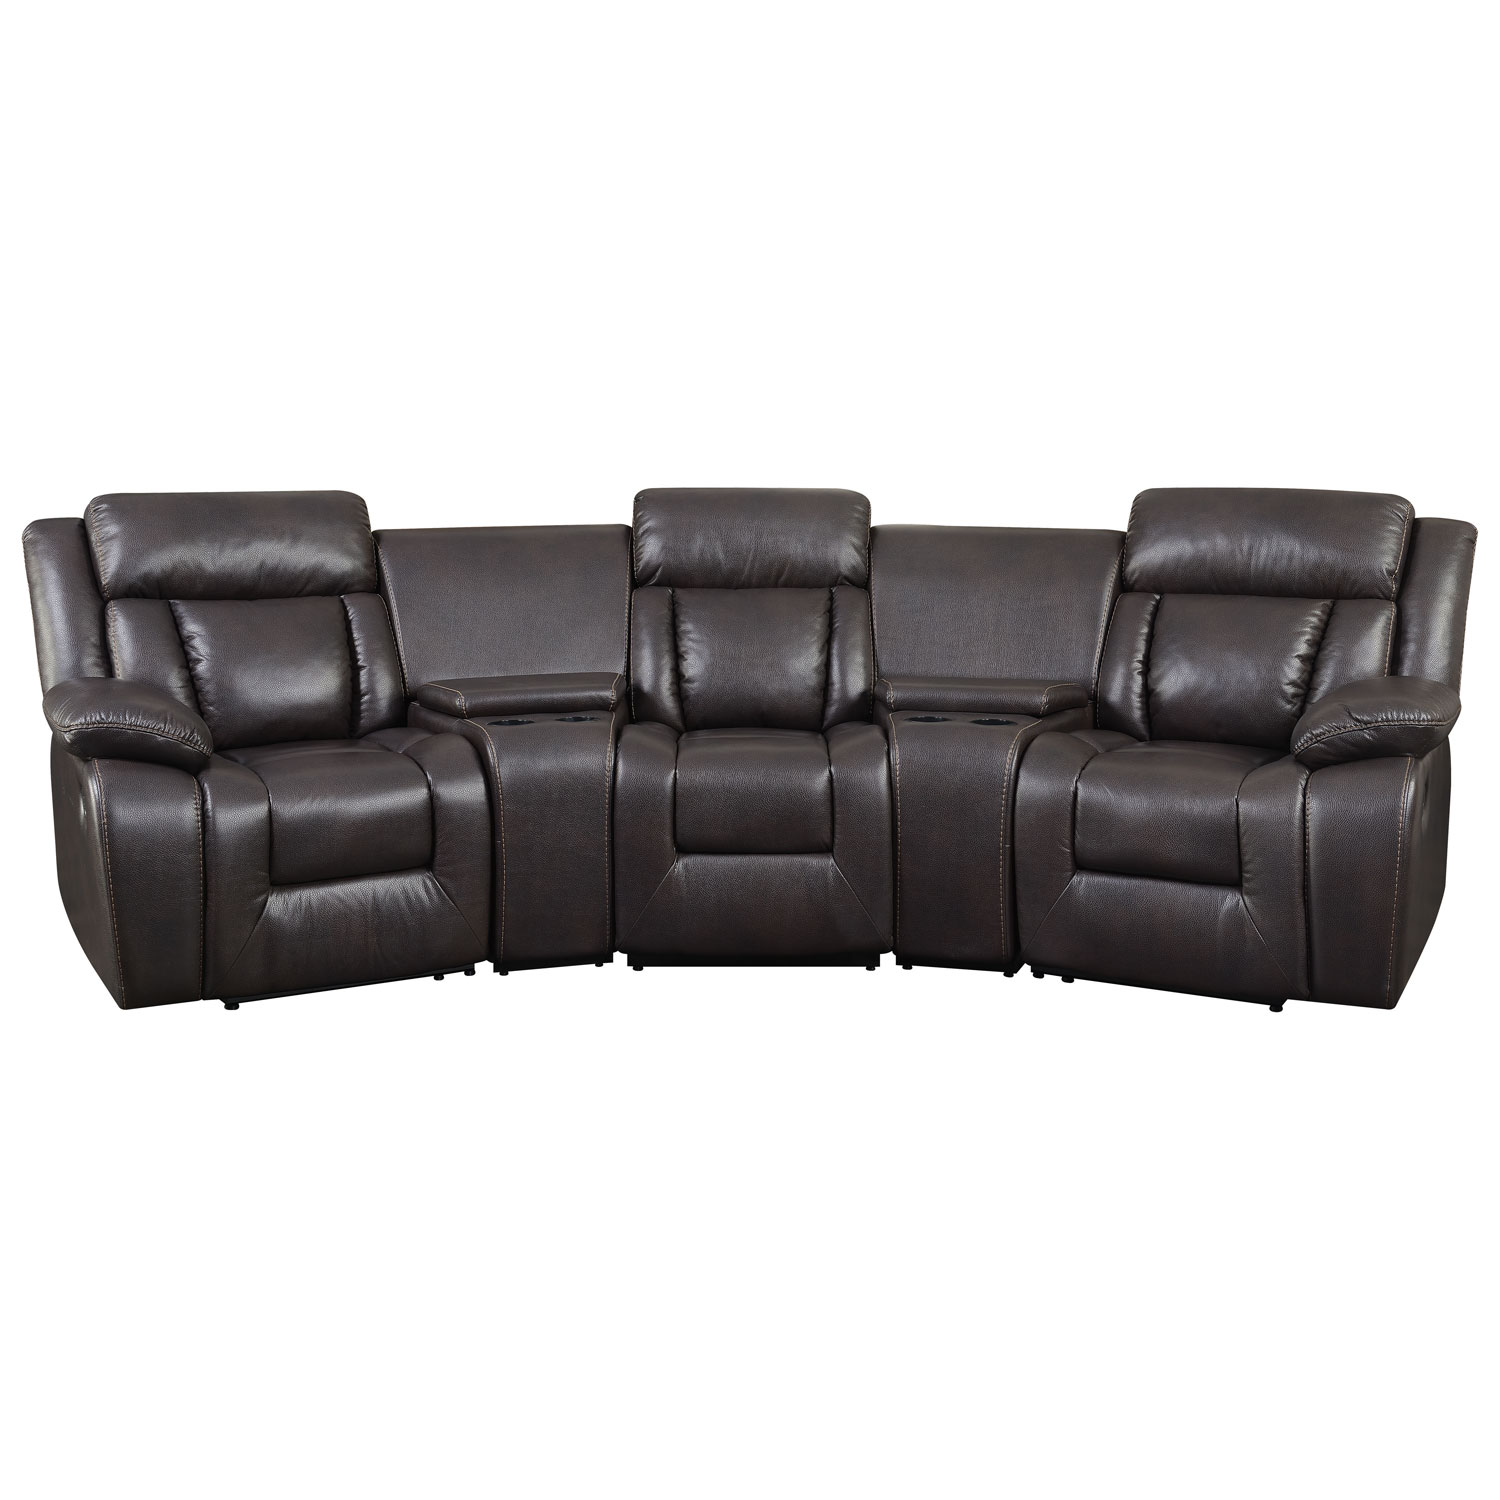 Home Theatre Seating Sofas & Sectionals Best Buy Canada